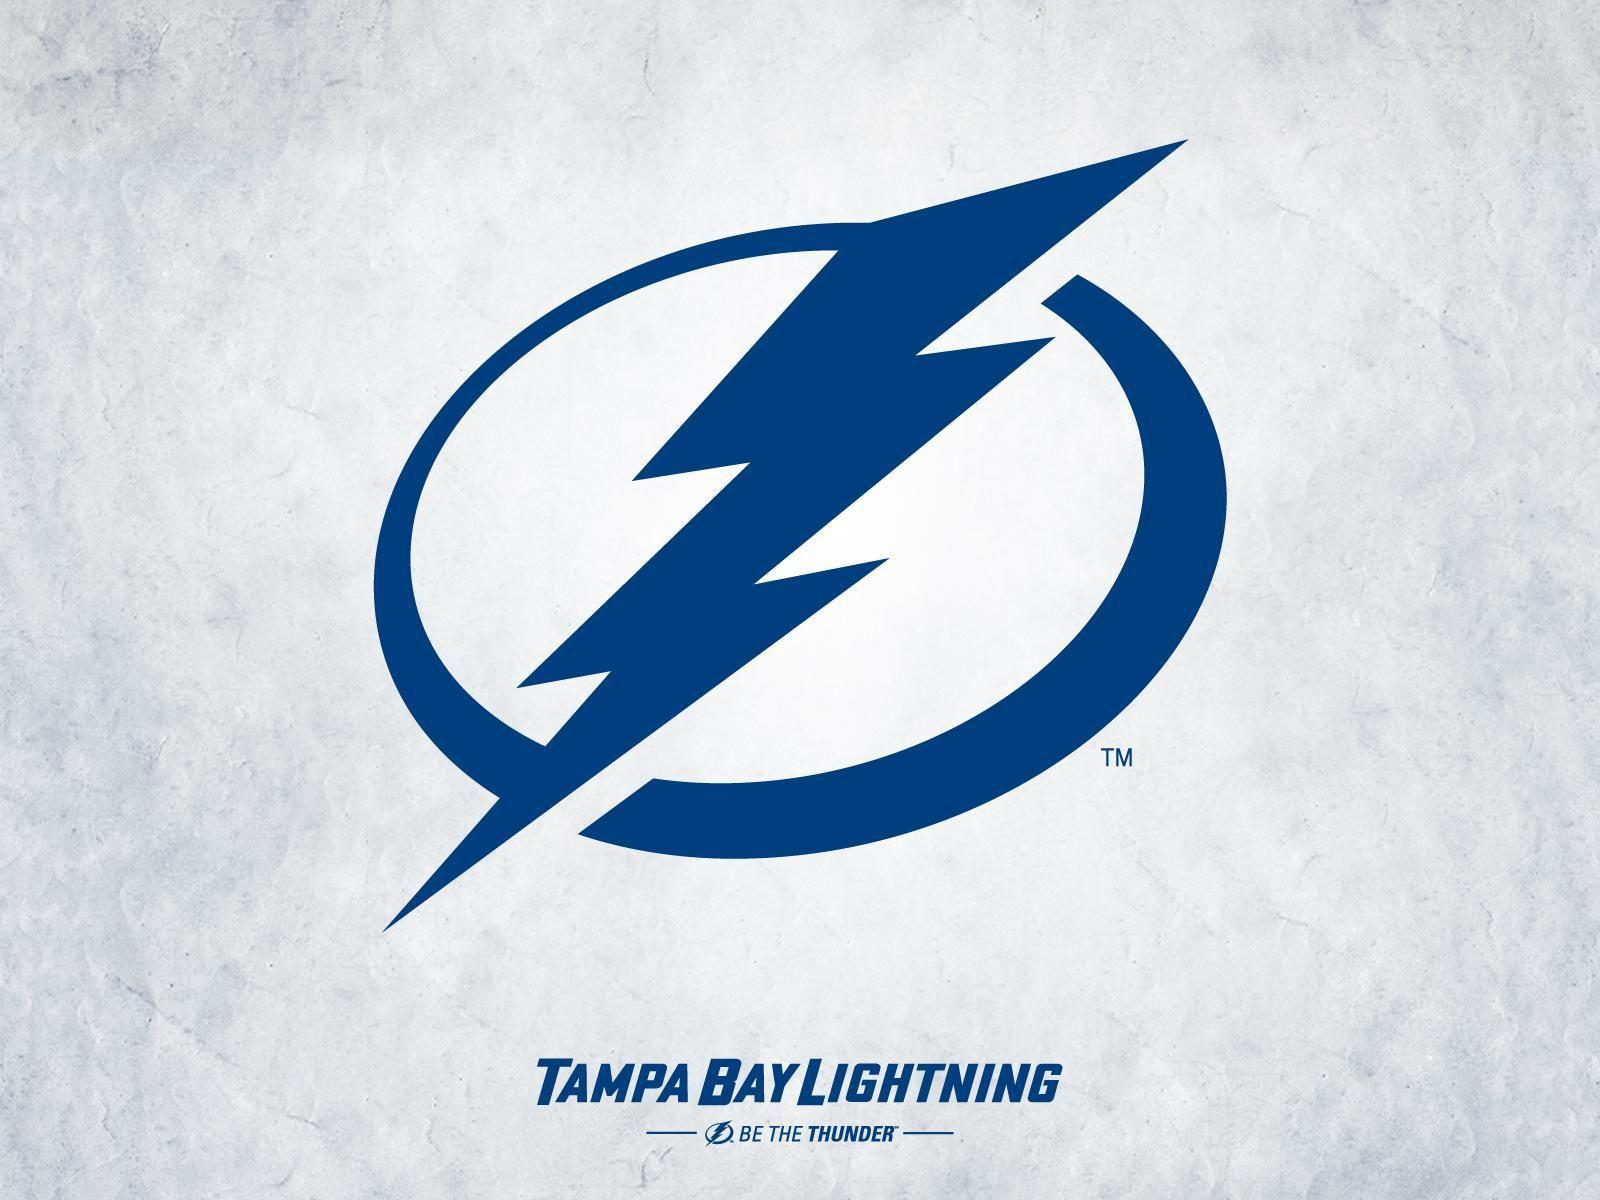 Tampa Bay Lightning 2018 Wallpapers Wallpaper Cave